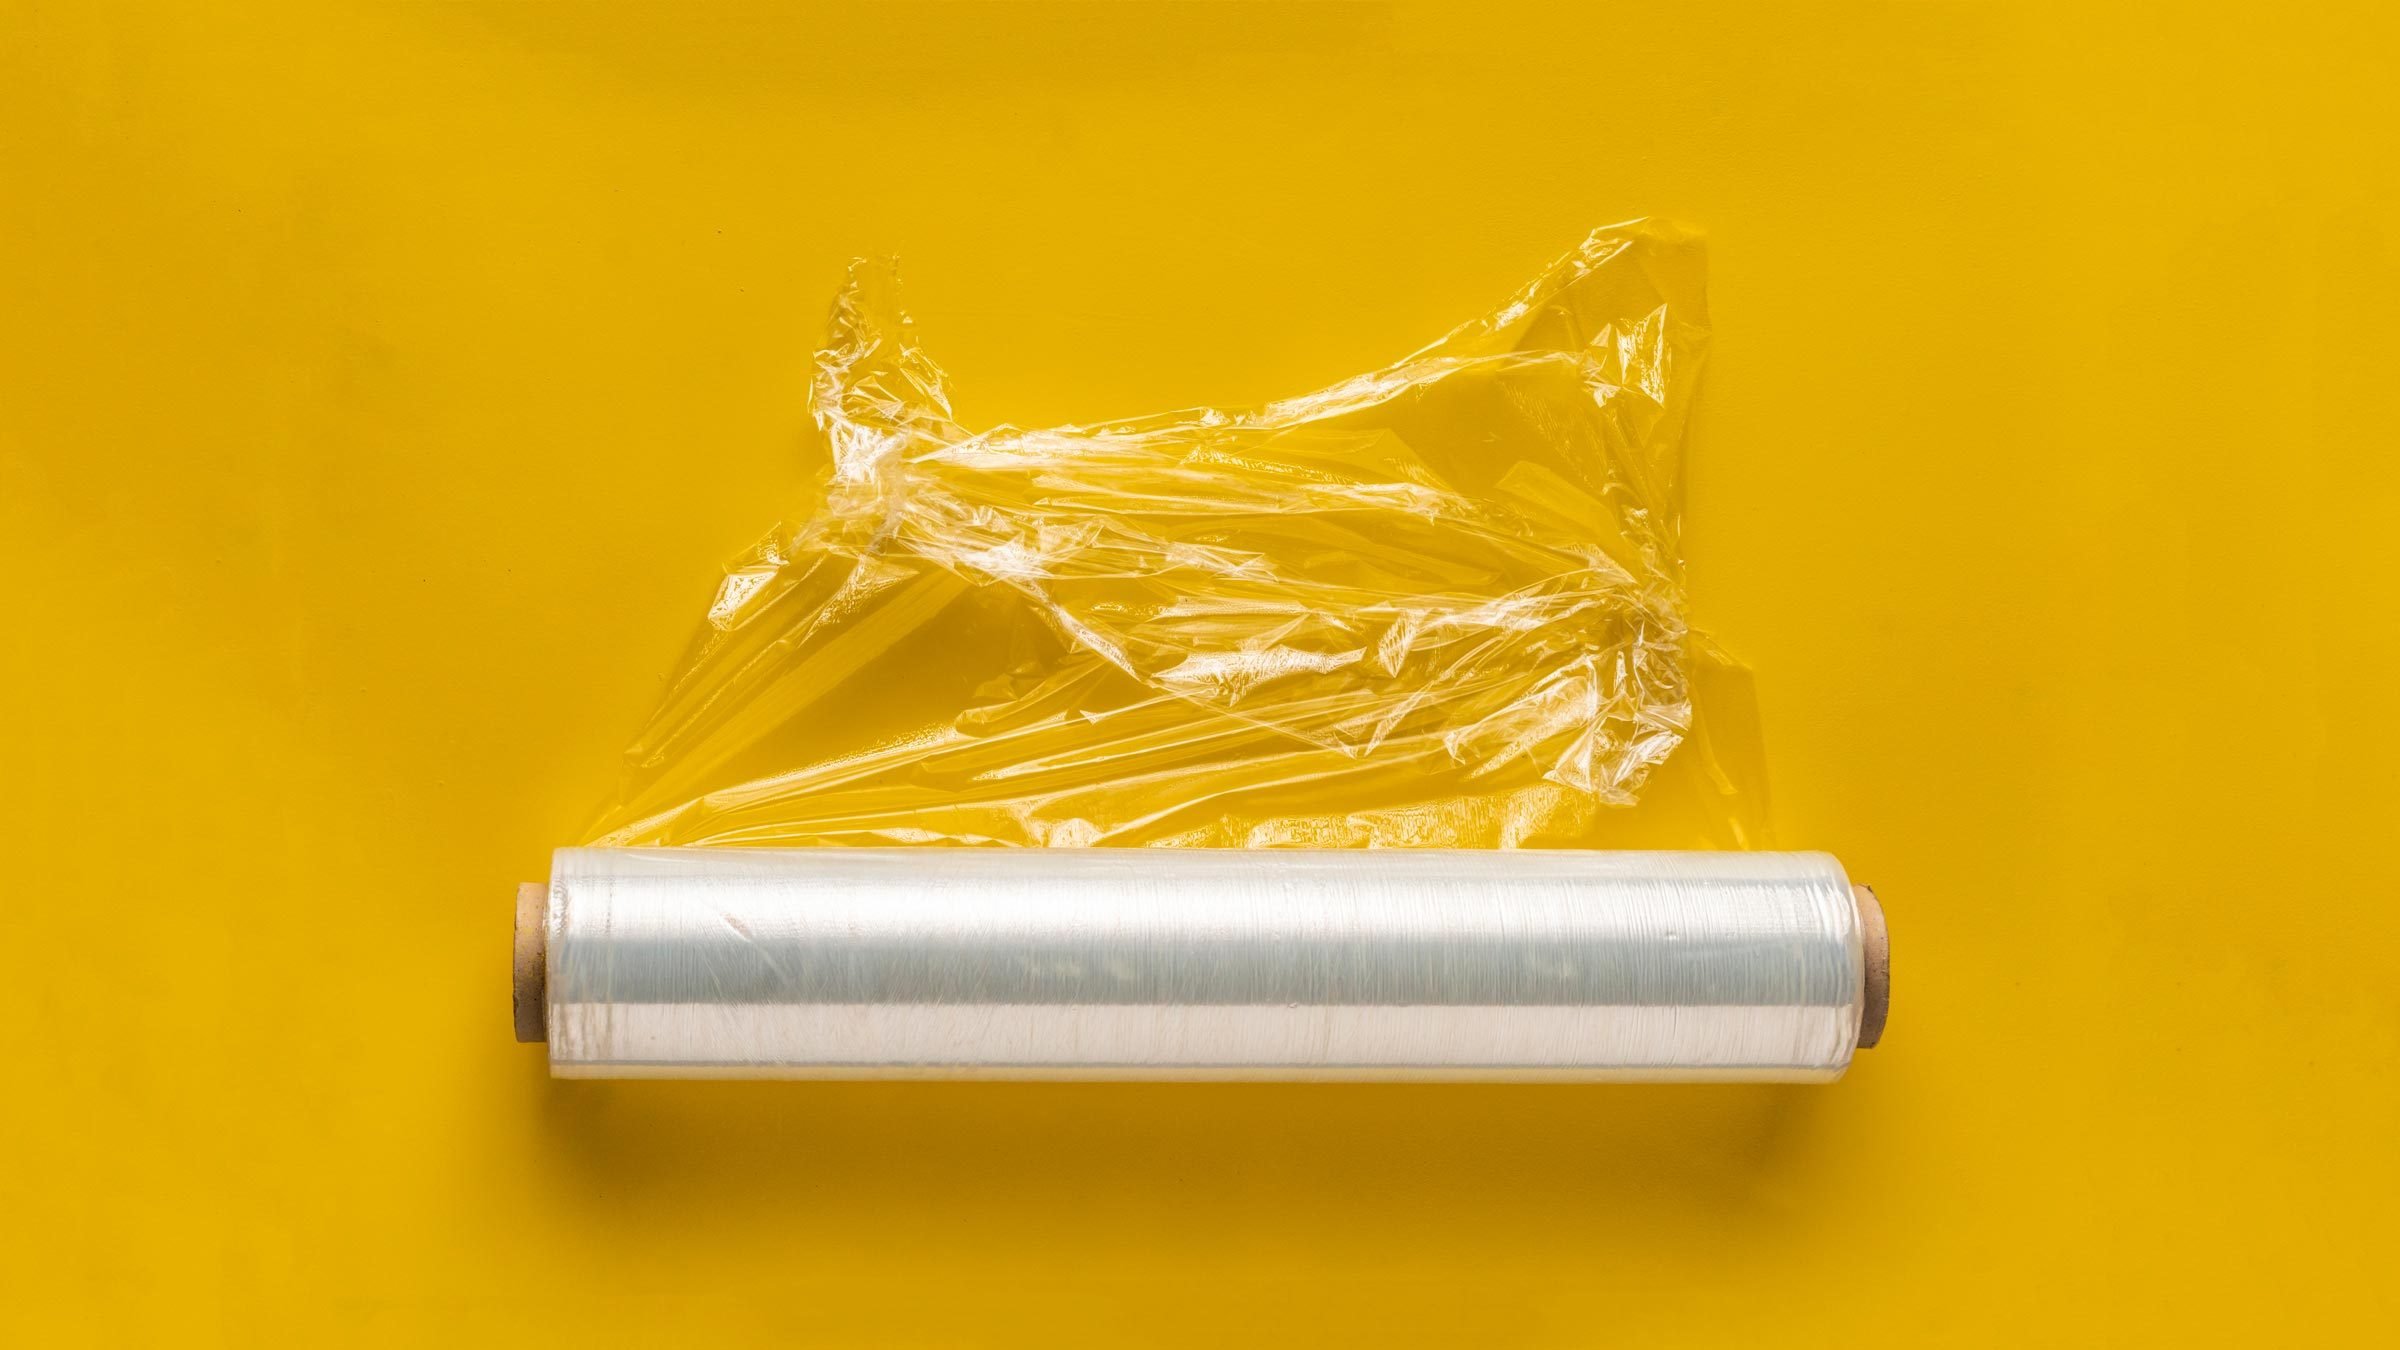 roll of plastic wrap on yellow background